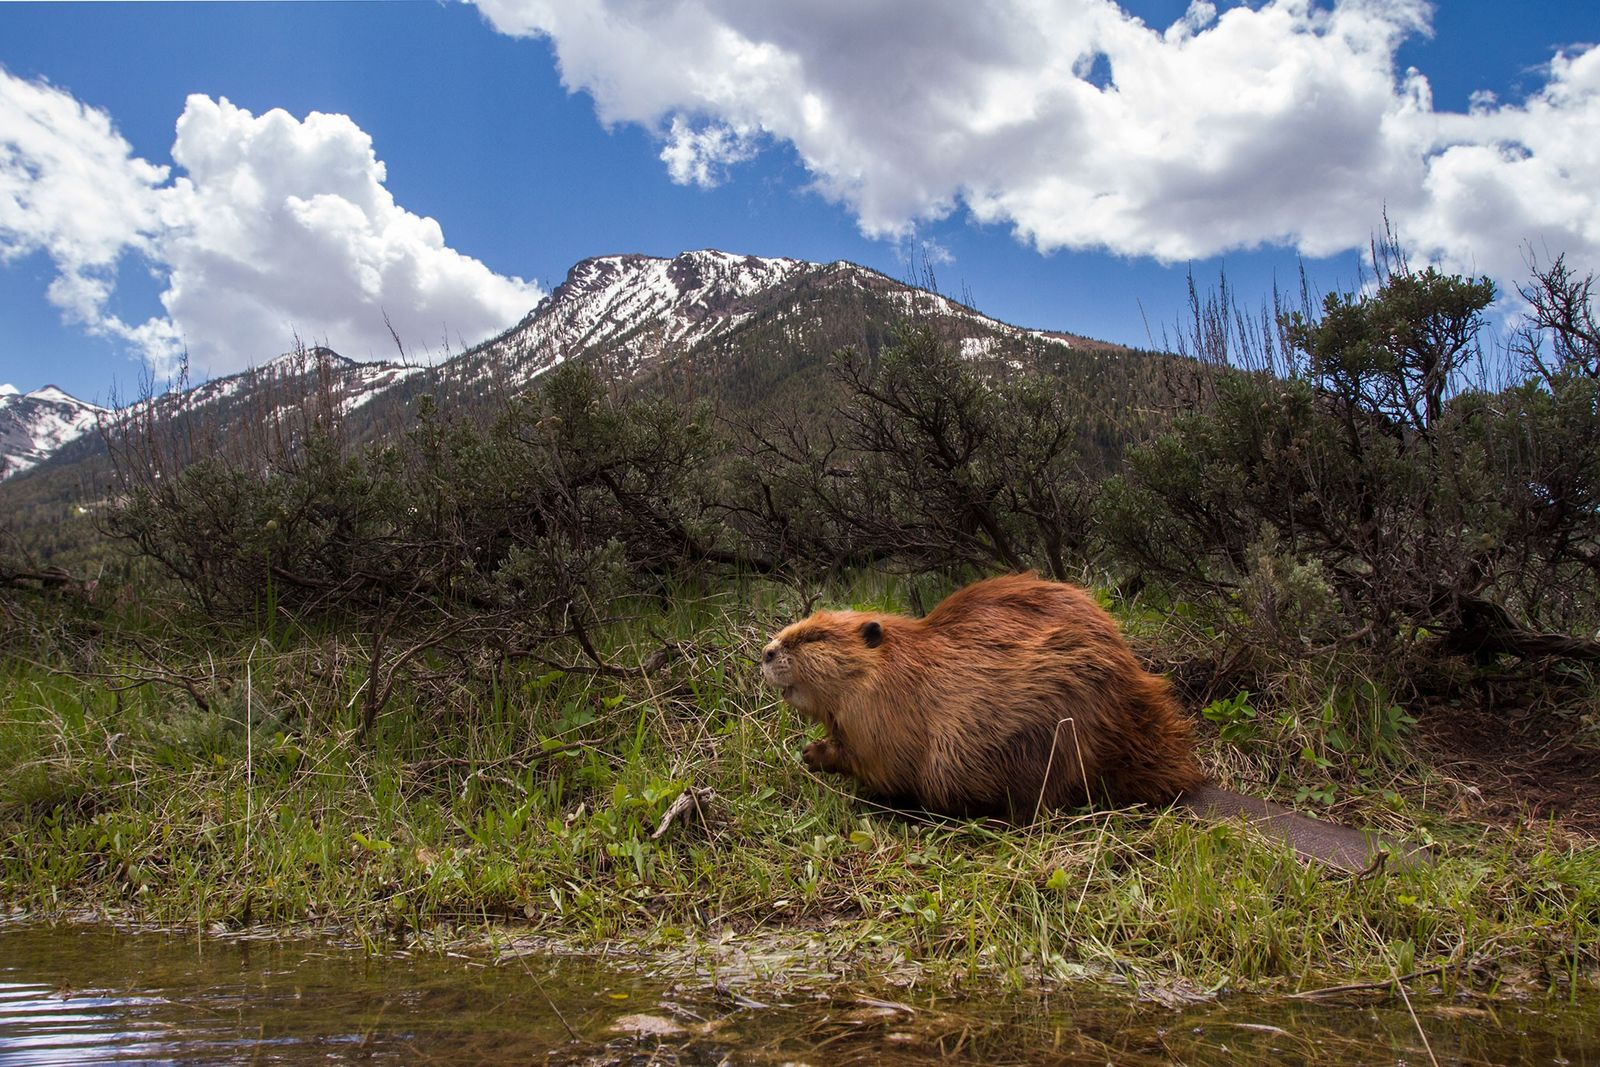 A North American beaver, Castor moves through a flooded canal in Montana's Cenntenial Valley.